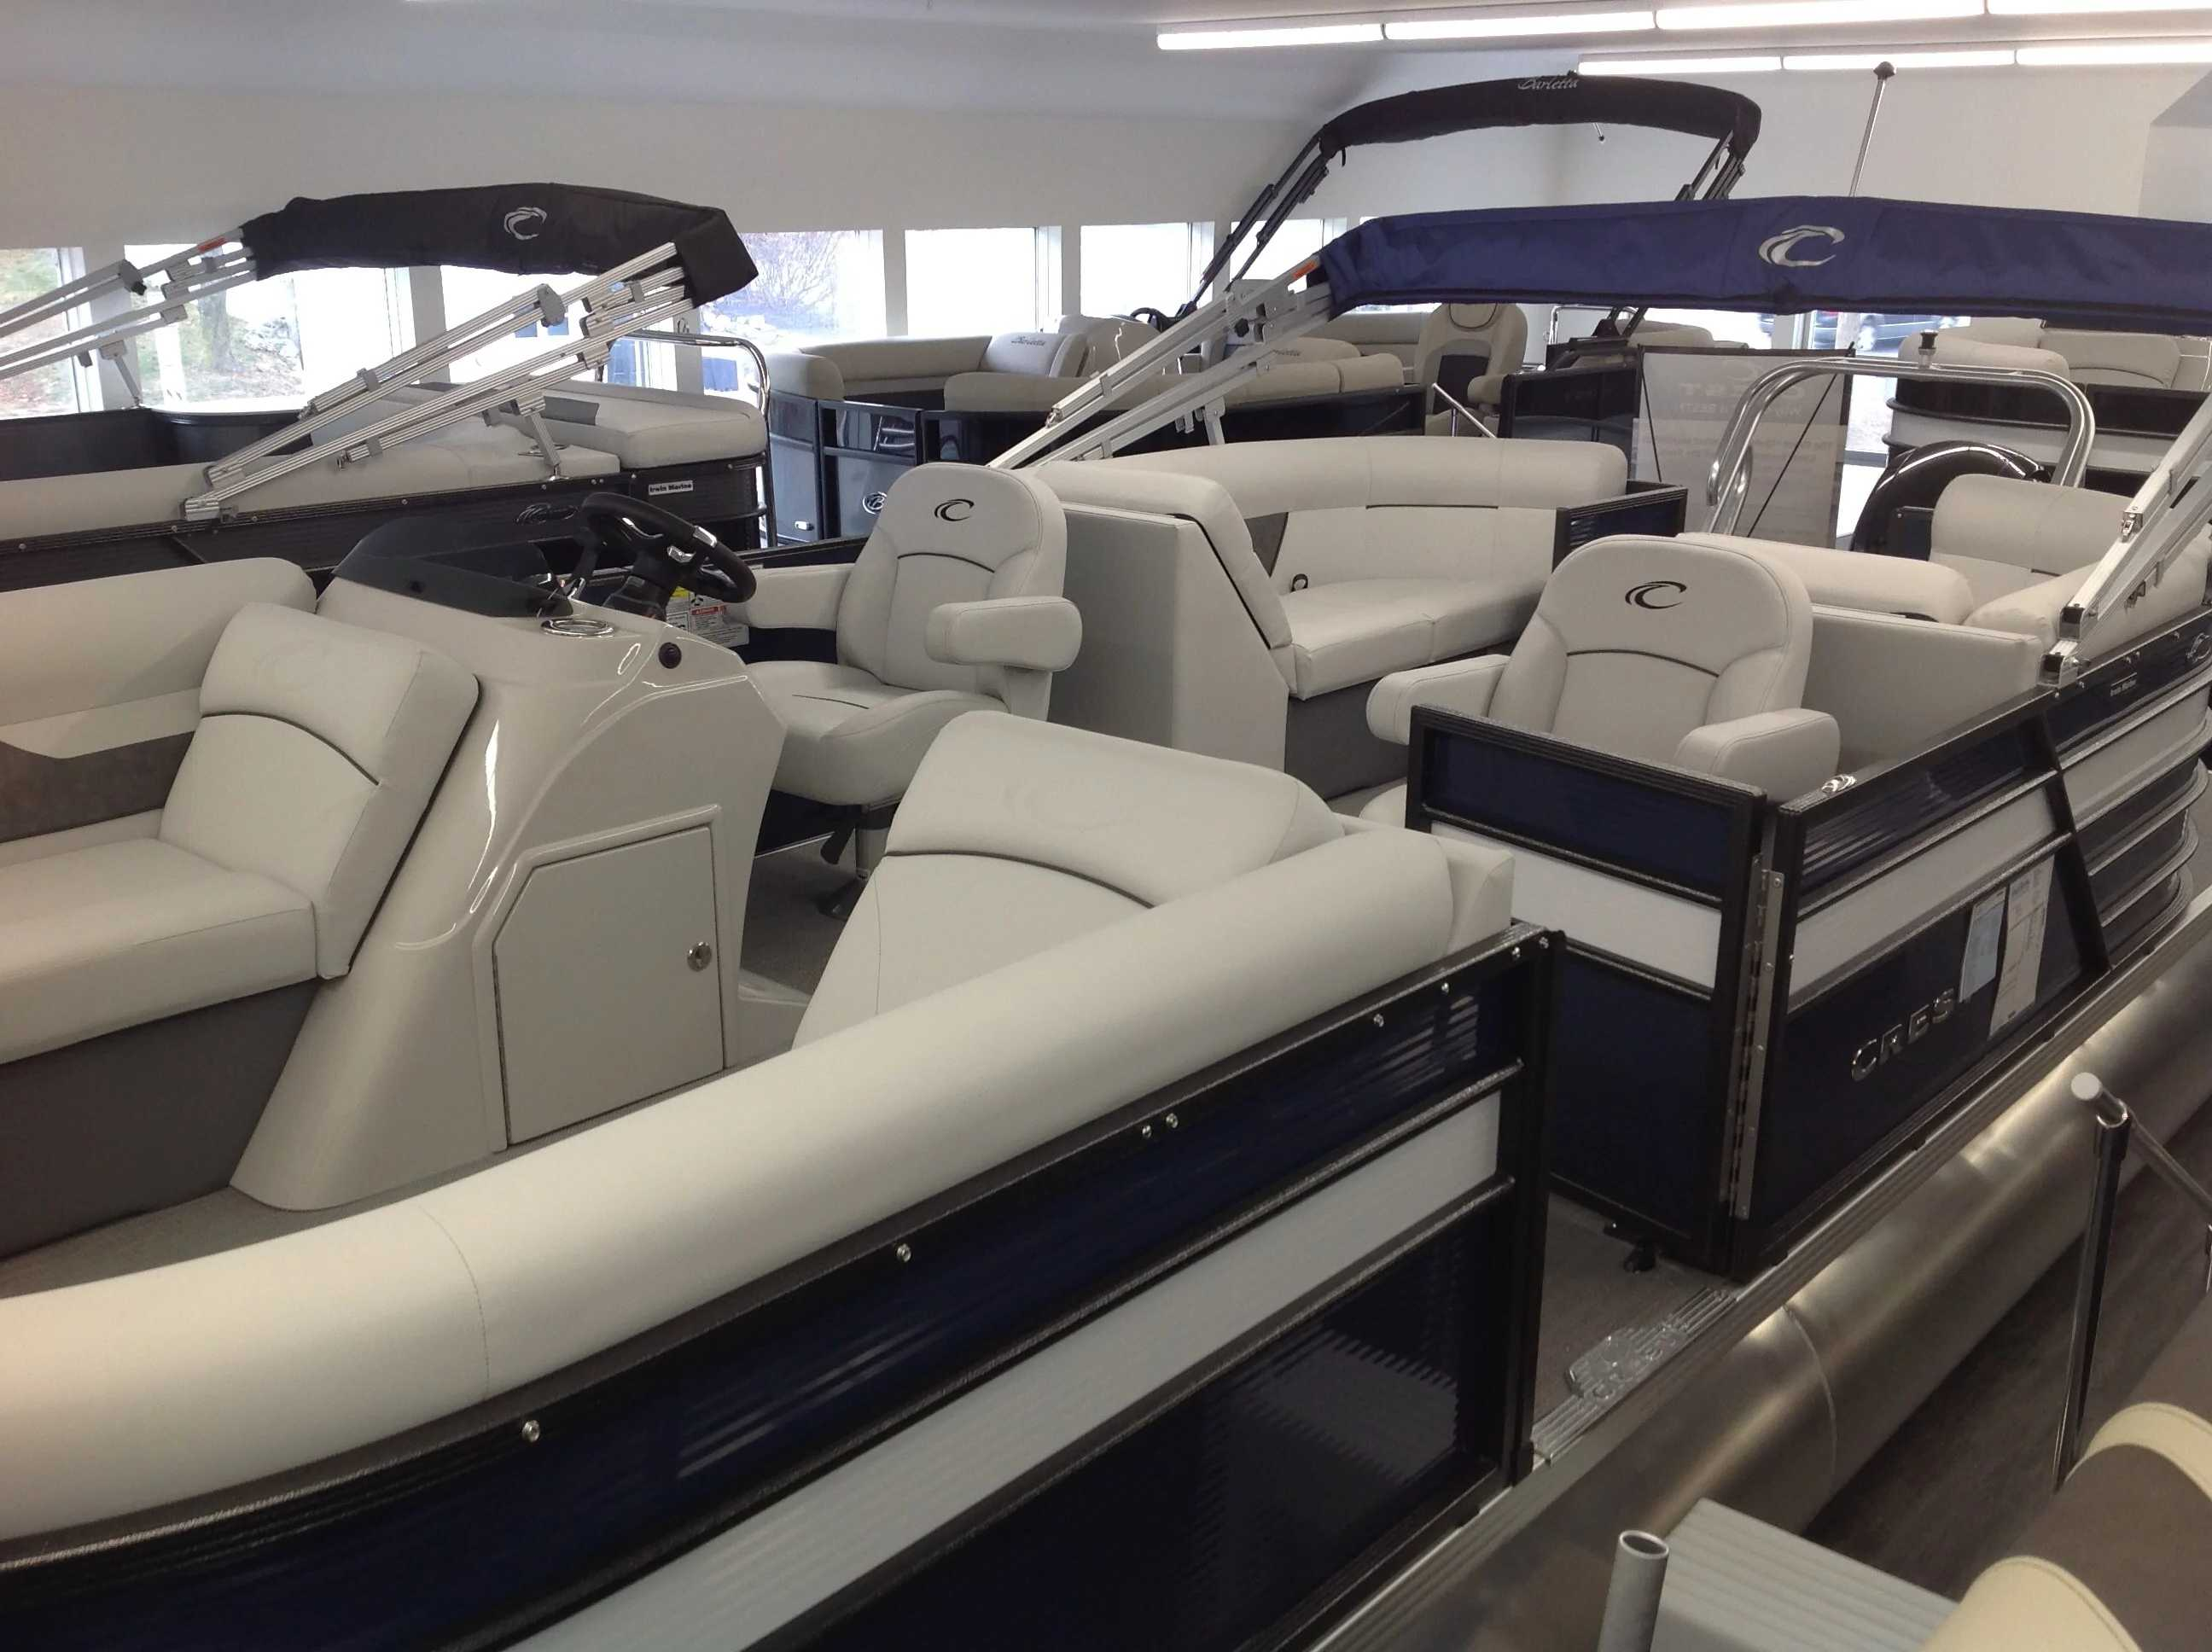 2021 Crest boat for sale, model of the boat is Cl Lx 220slc & Image # 3 of 13